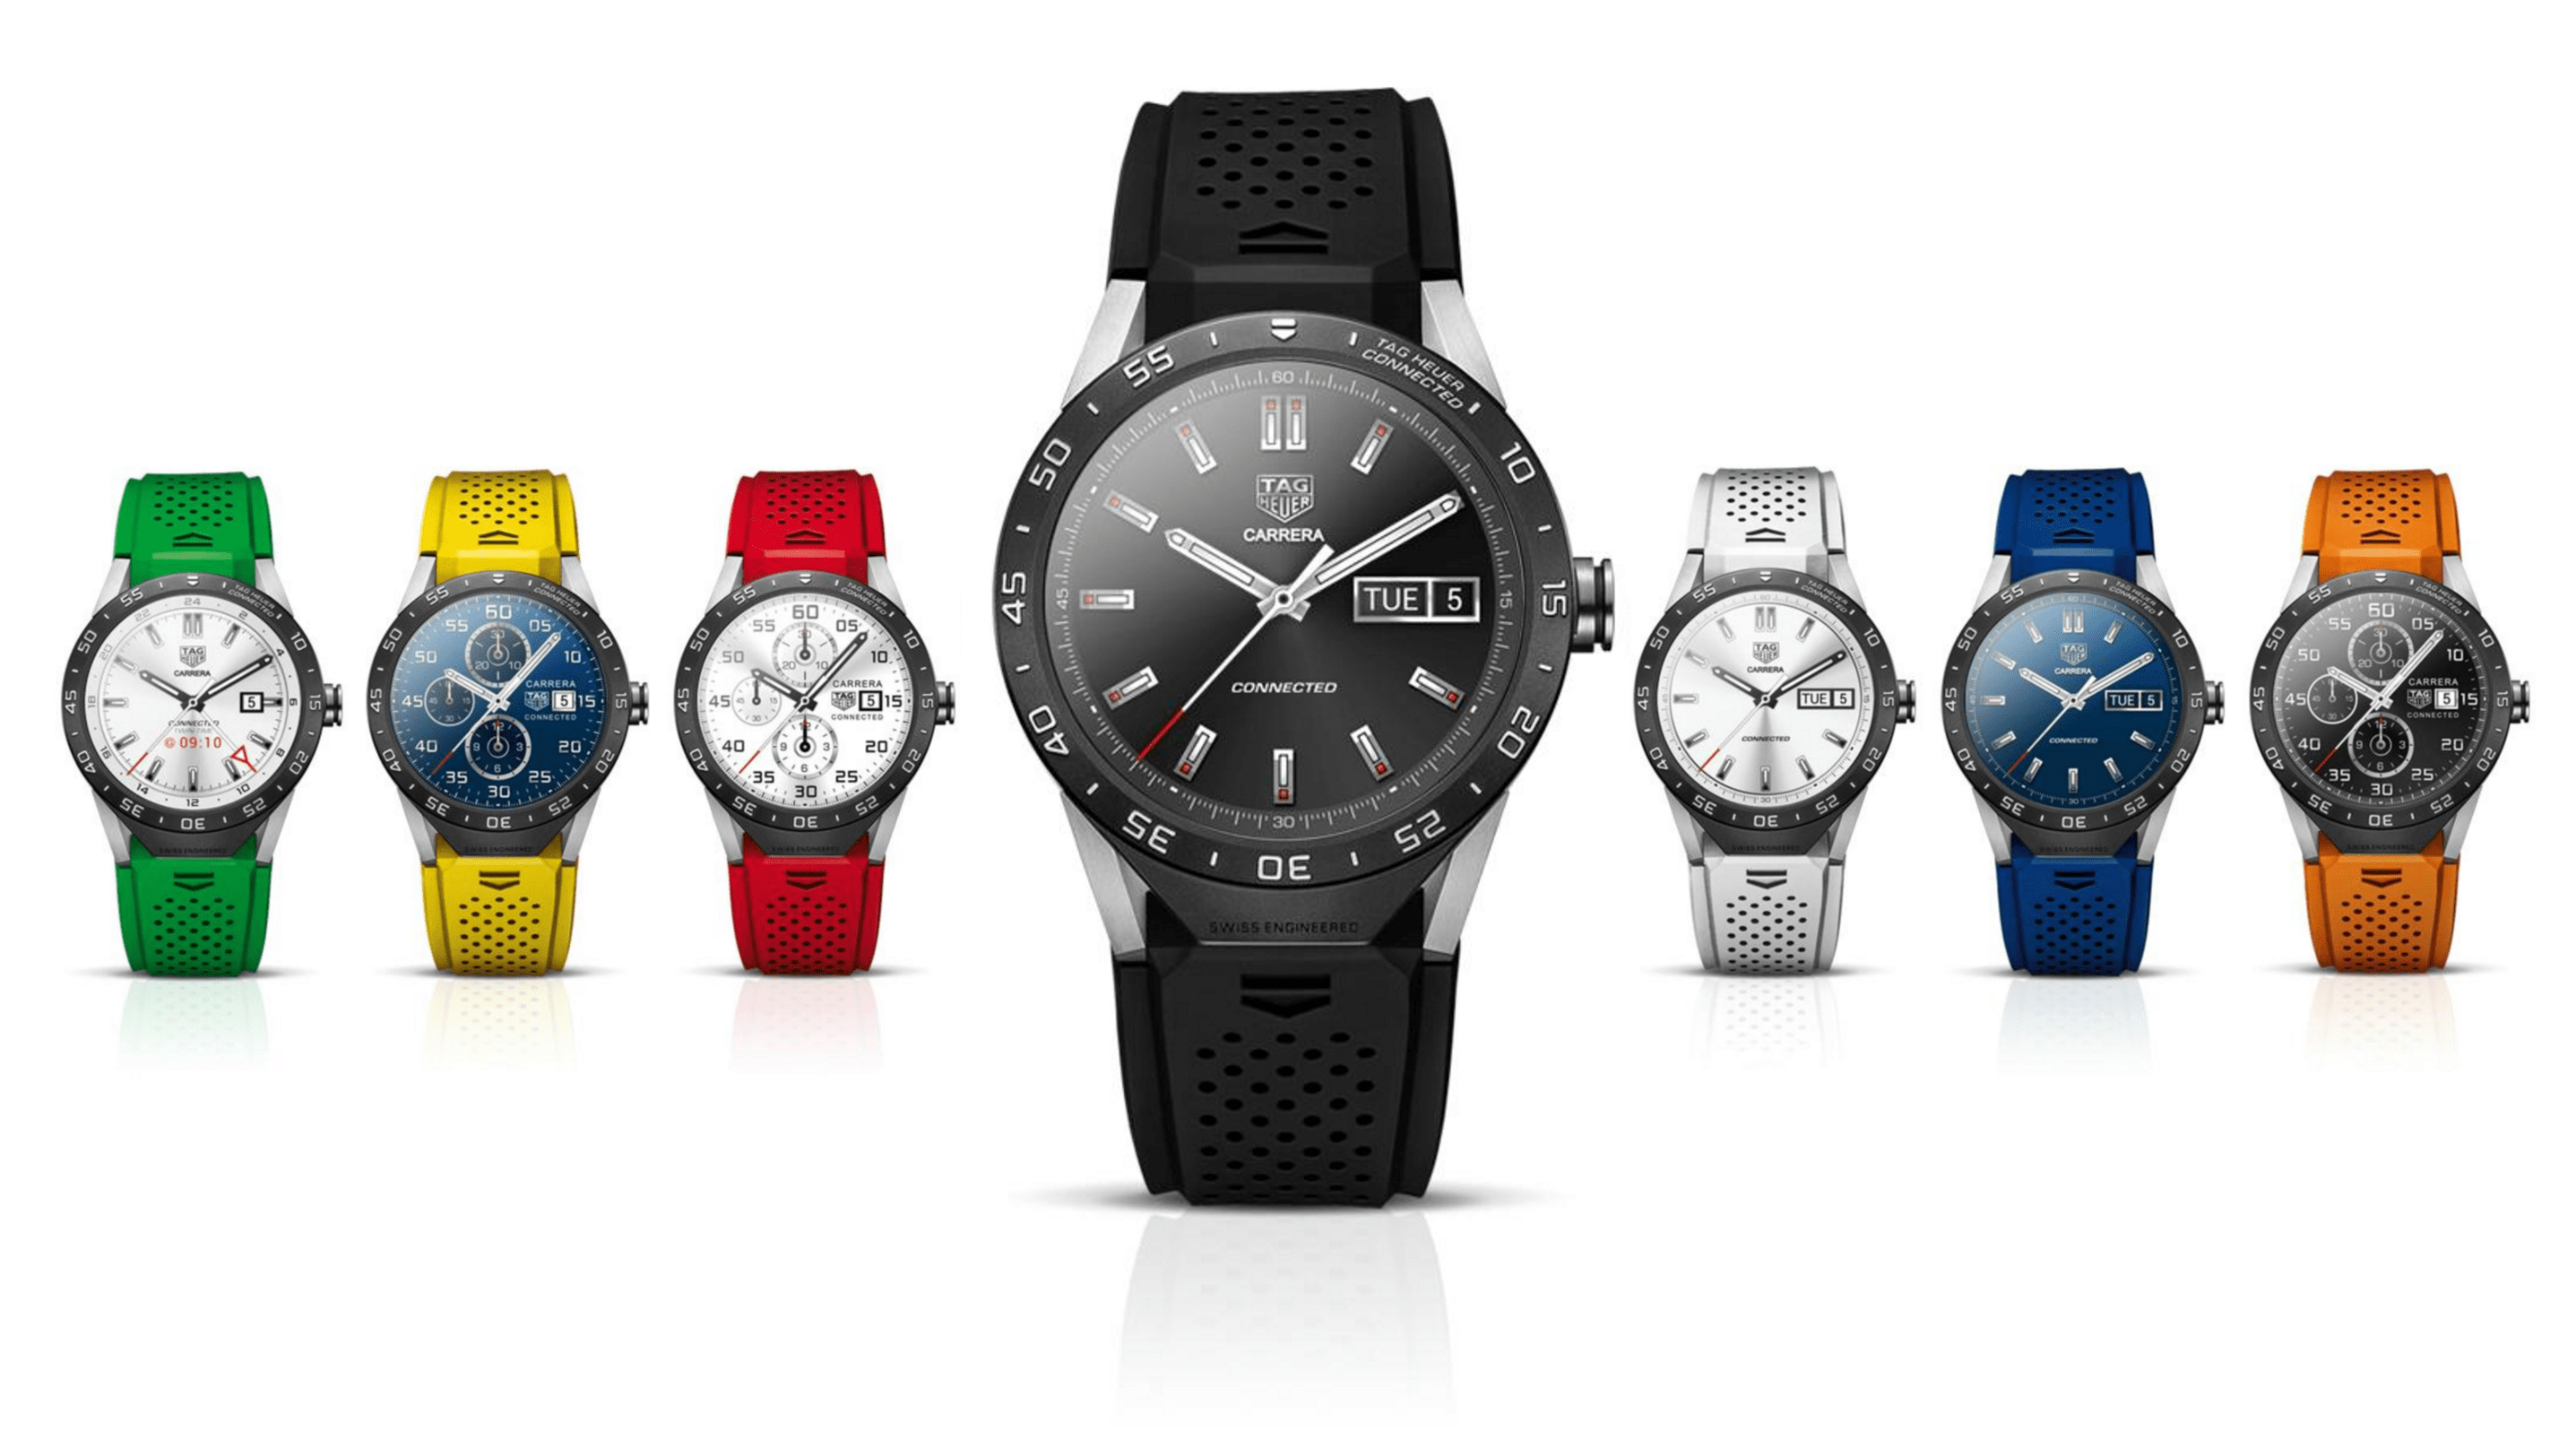 Tag Heuer sells this watch in seven distinct colors.